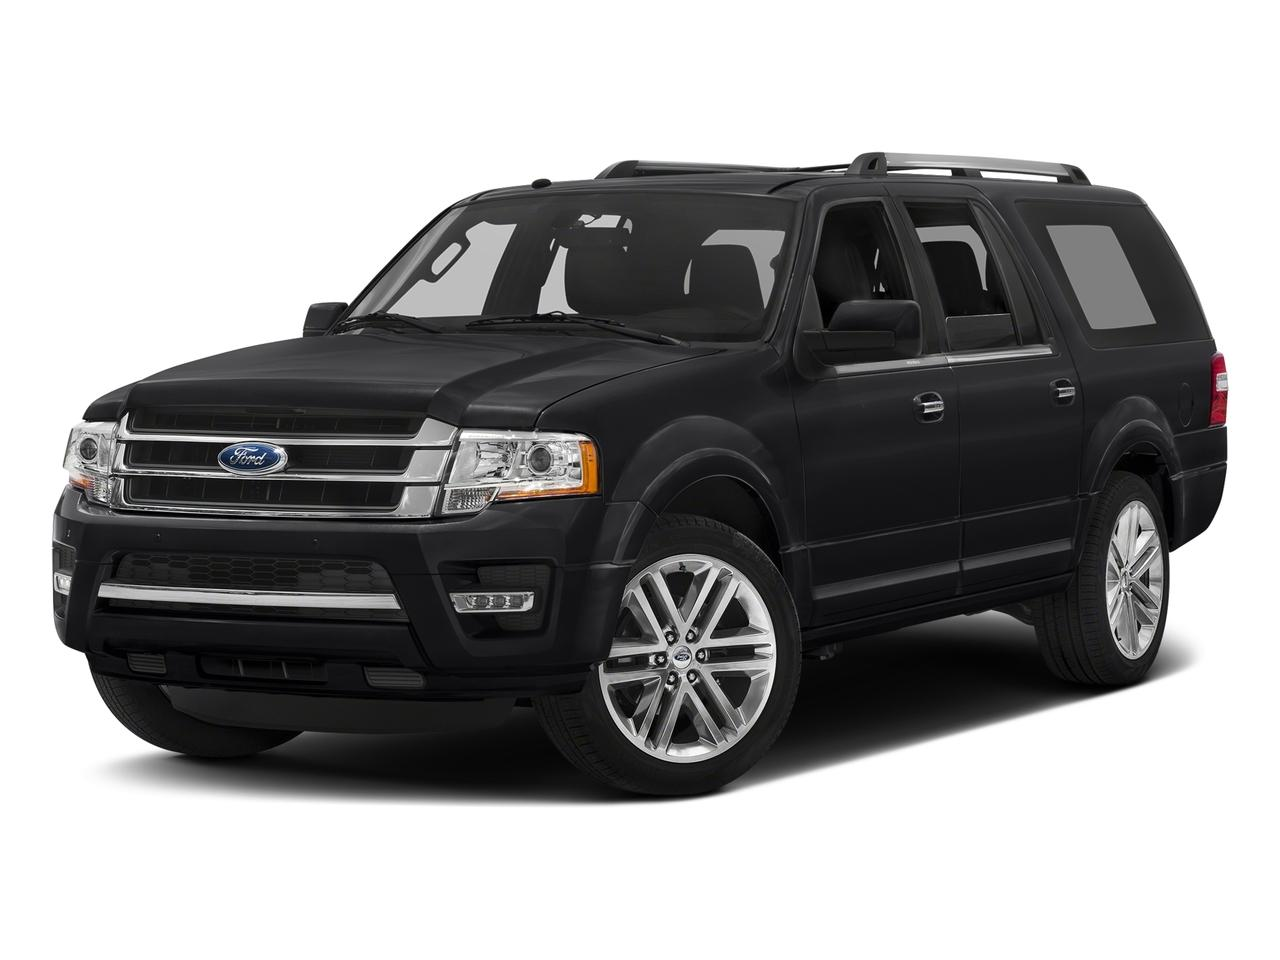 2017 Ford Expedition EL Vehicle Photo in Grapevine, TX 76051